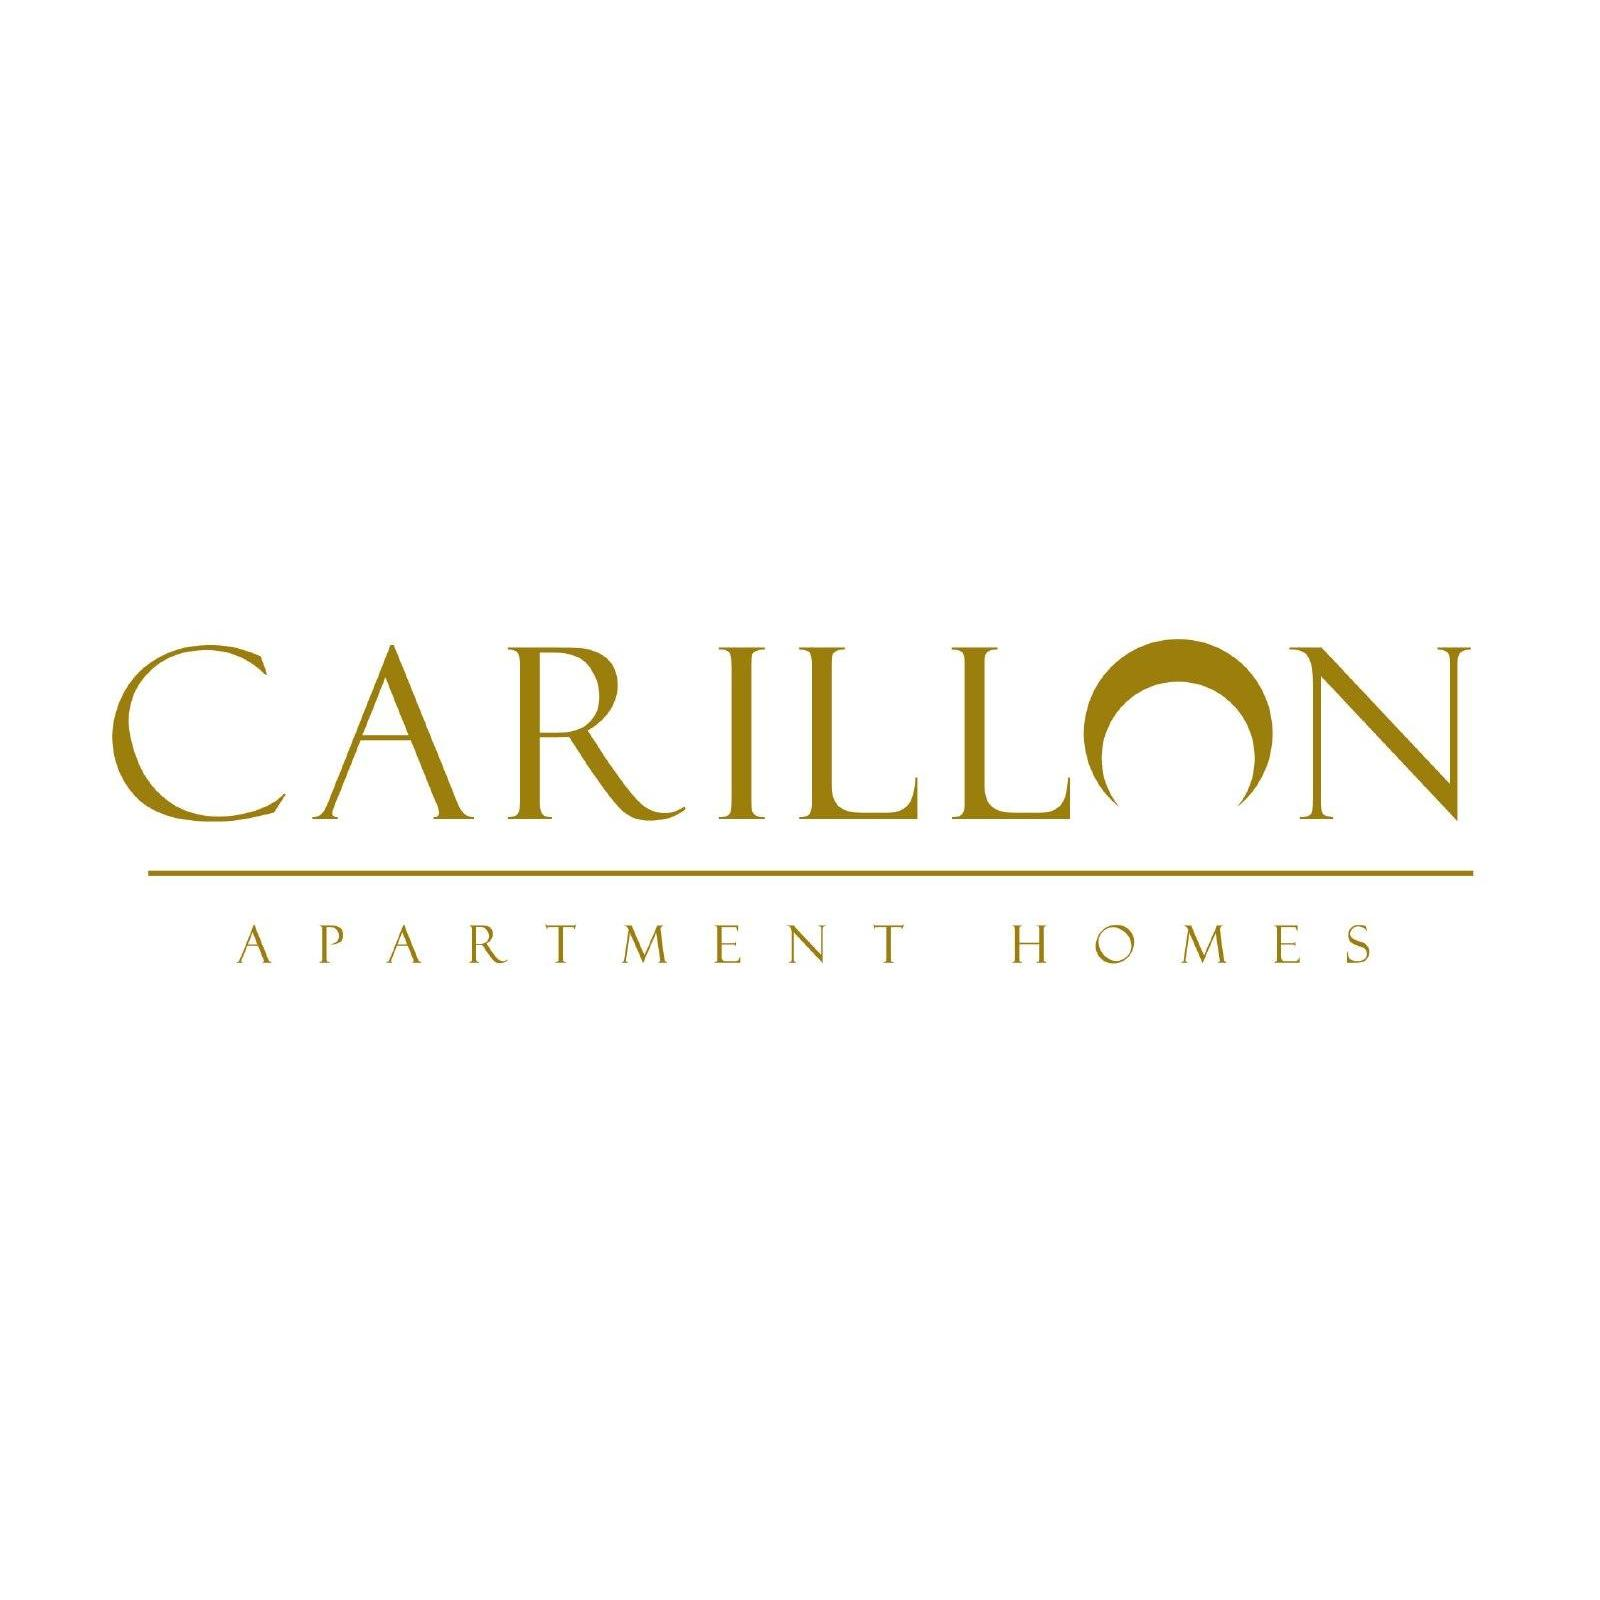 Carillon Apartment Homes